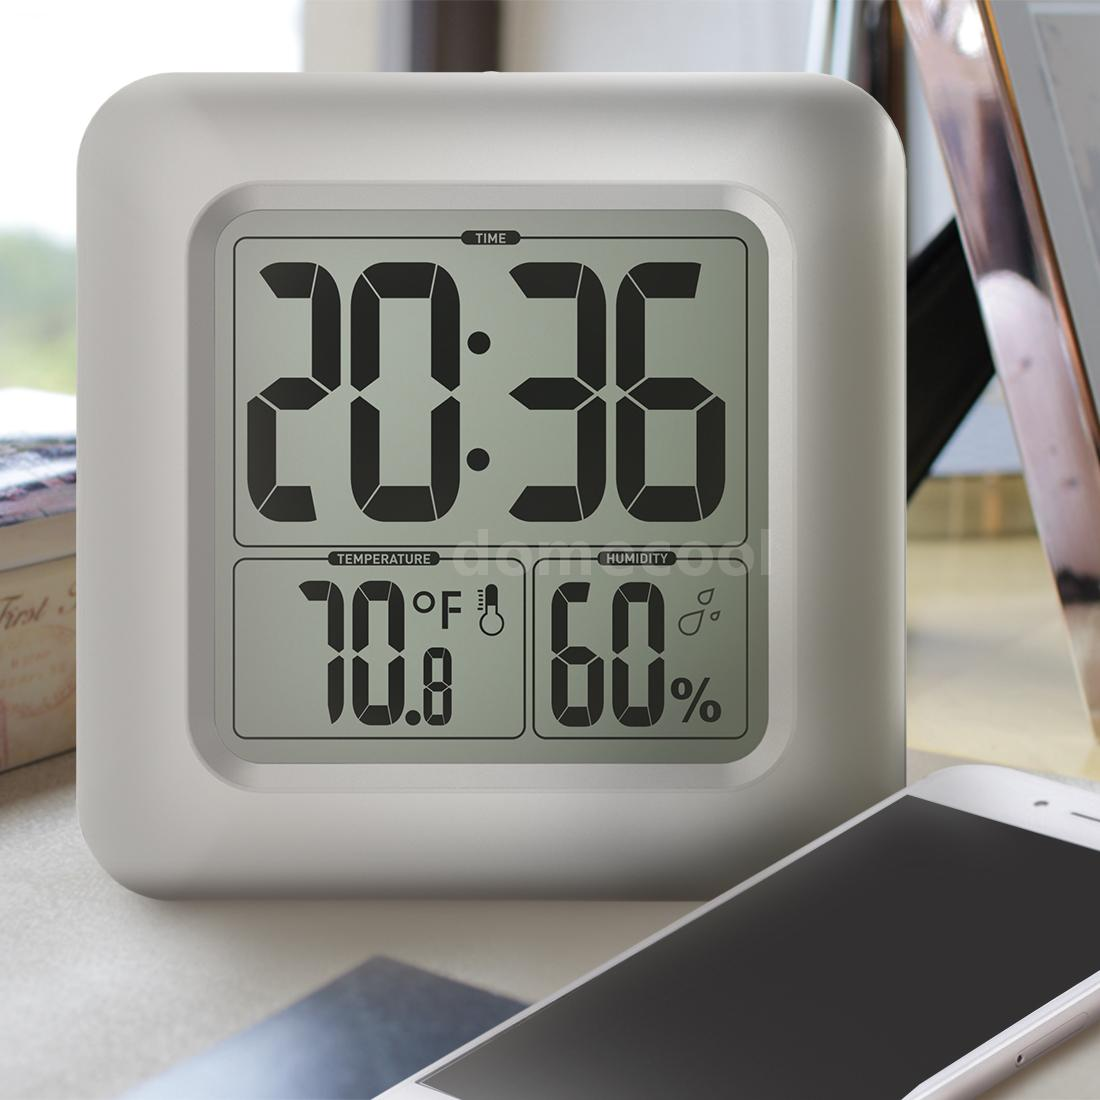 Digital lcd display waterproof bathroom wall shower clock with this square digital clock is essential for your bathroom this clock is water resistant so you have no worry about using in wet bathroom amipublicfo Choice Image